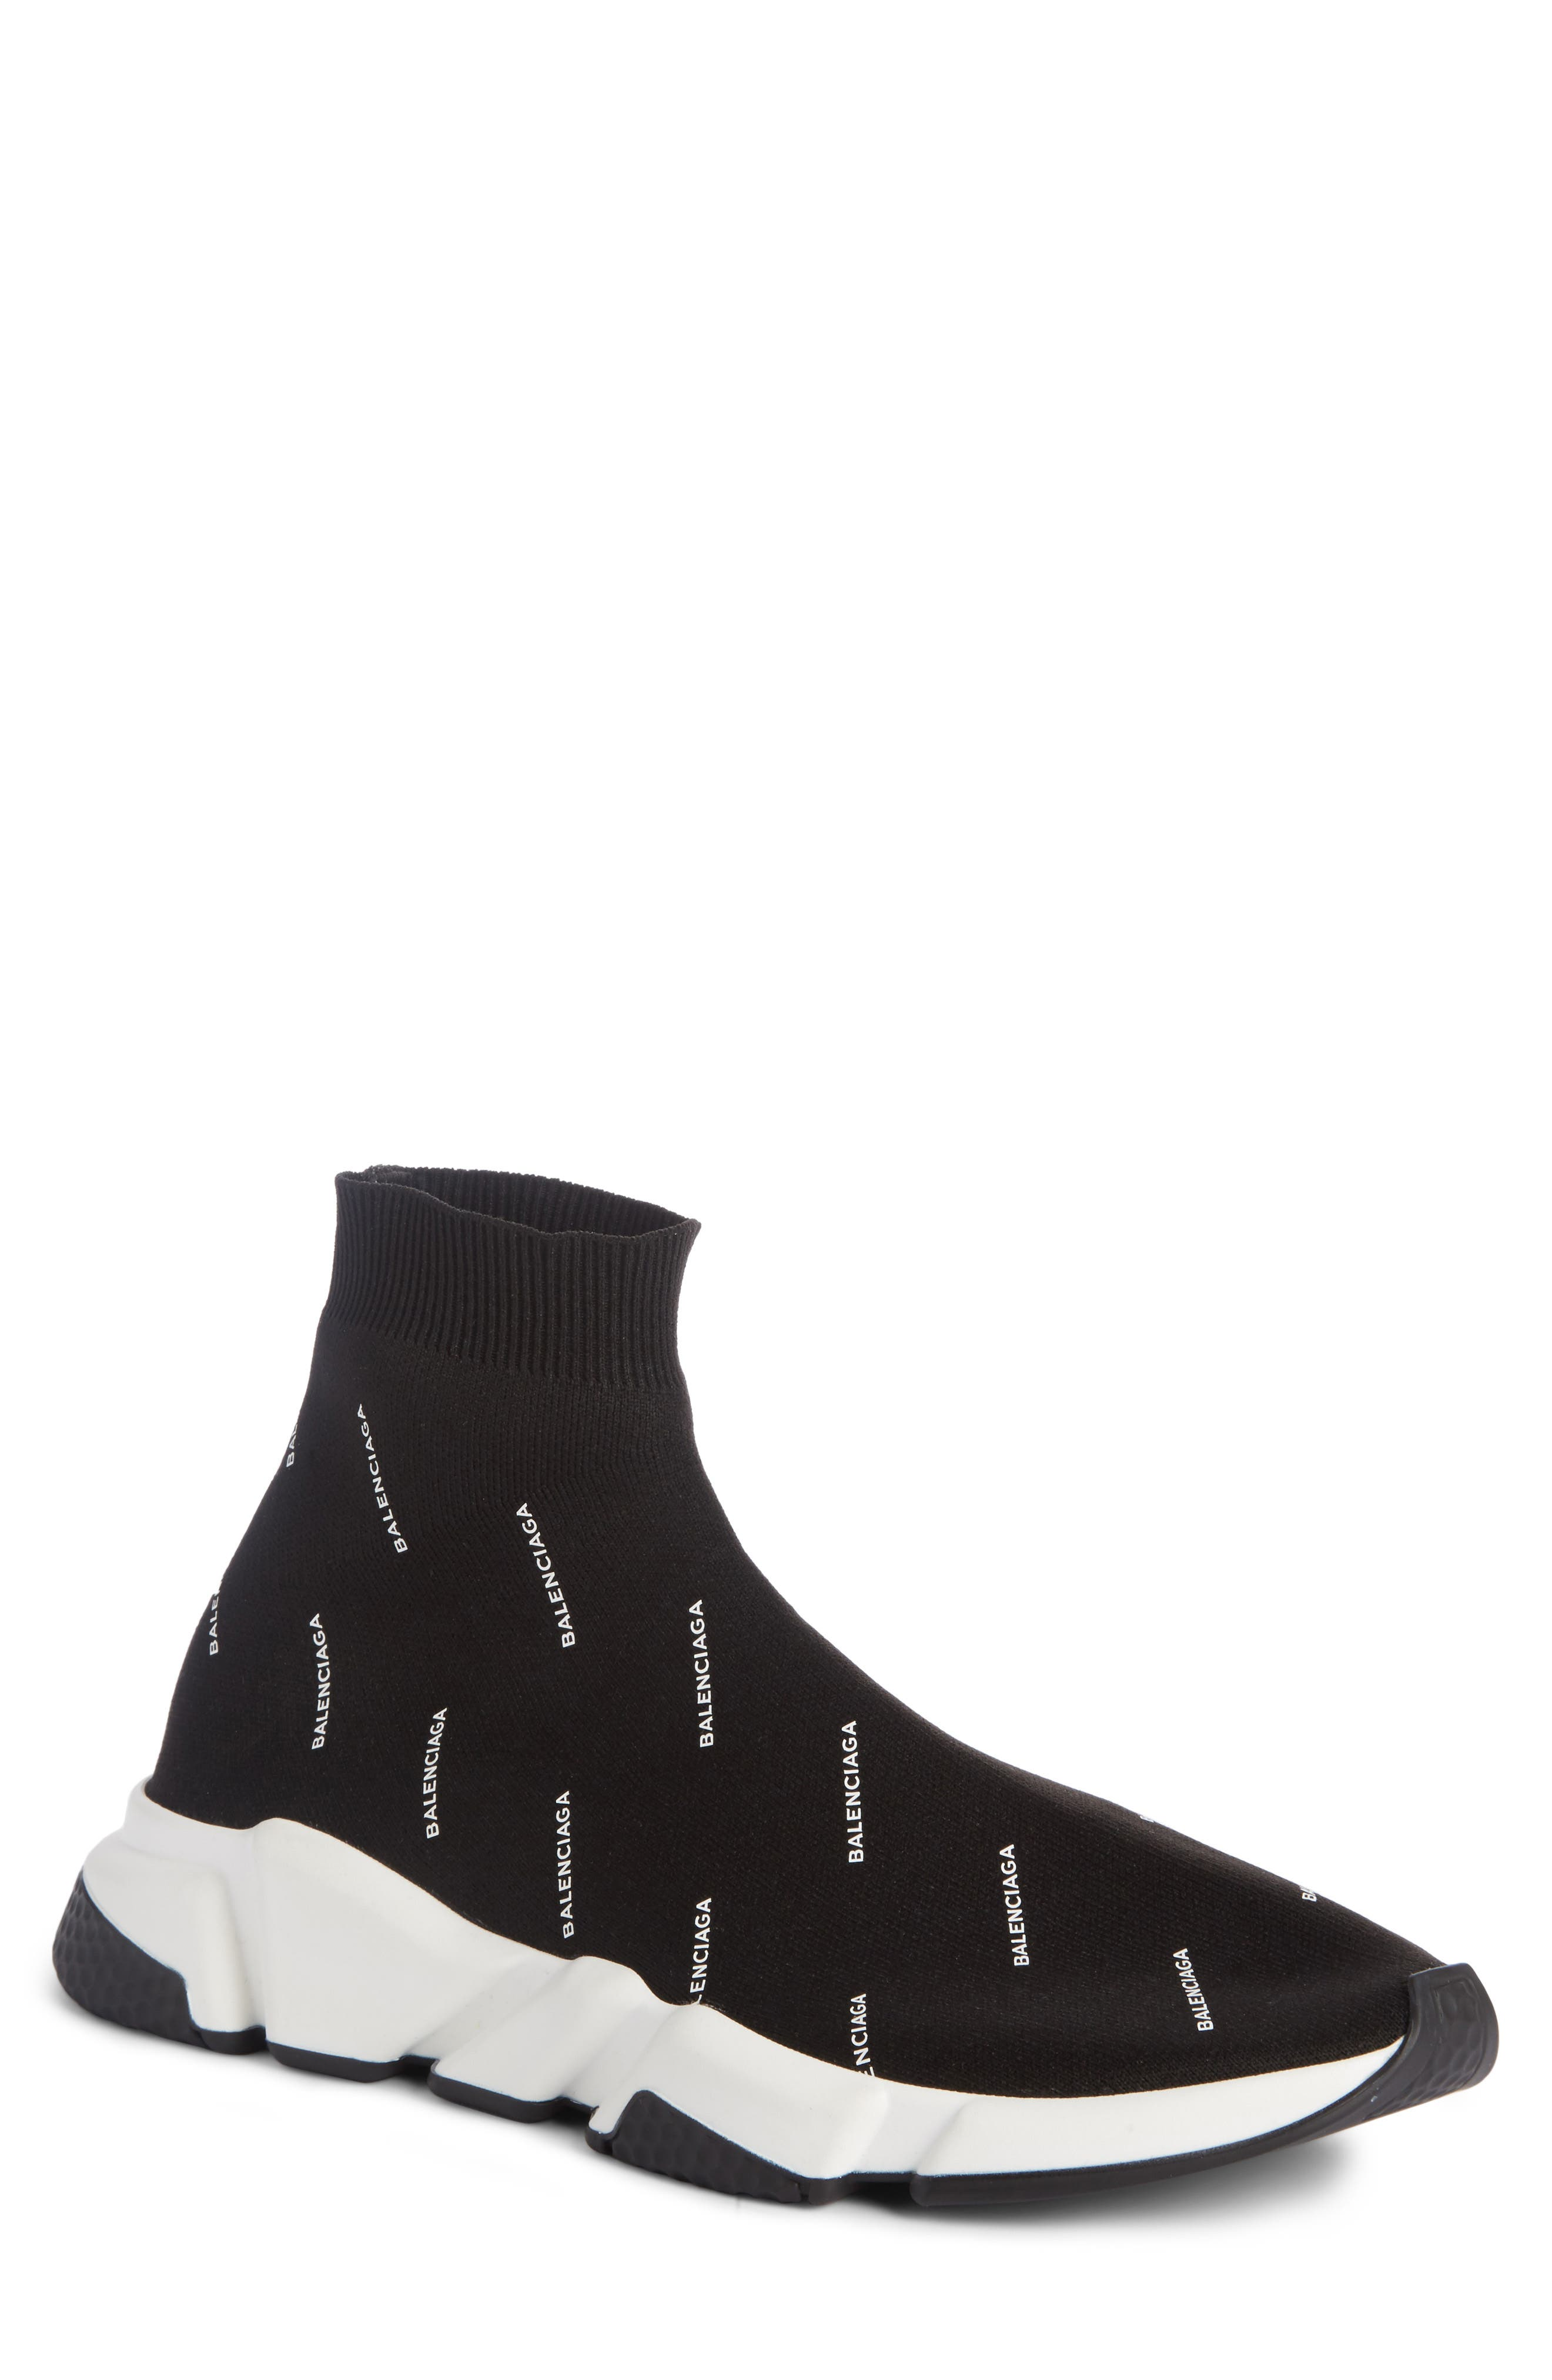 Balenciaga Logo Speed Slip-On (Men)